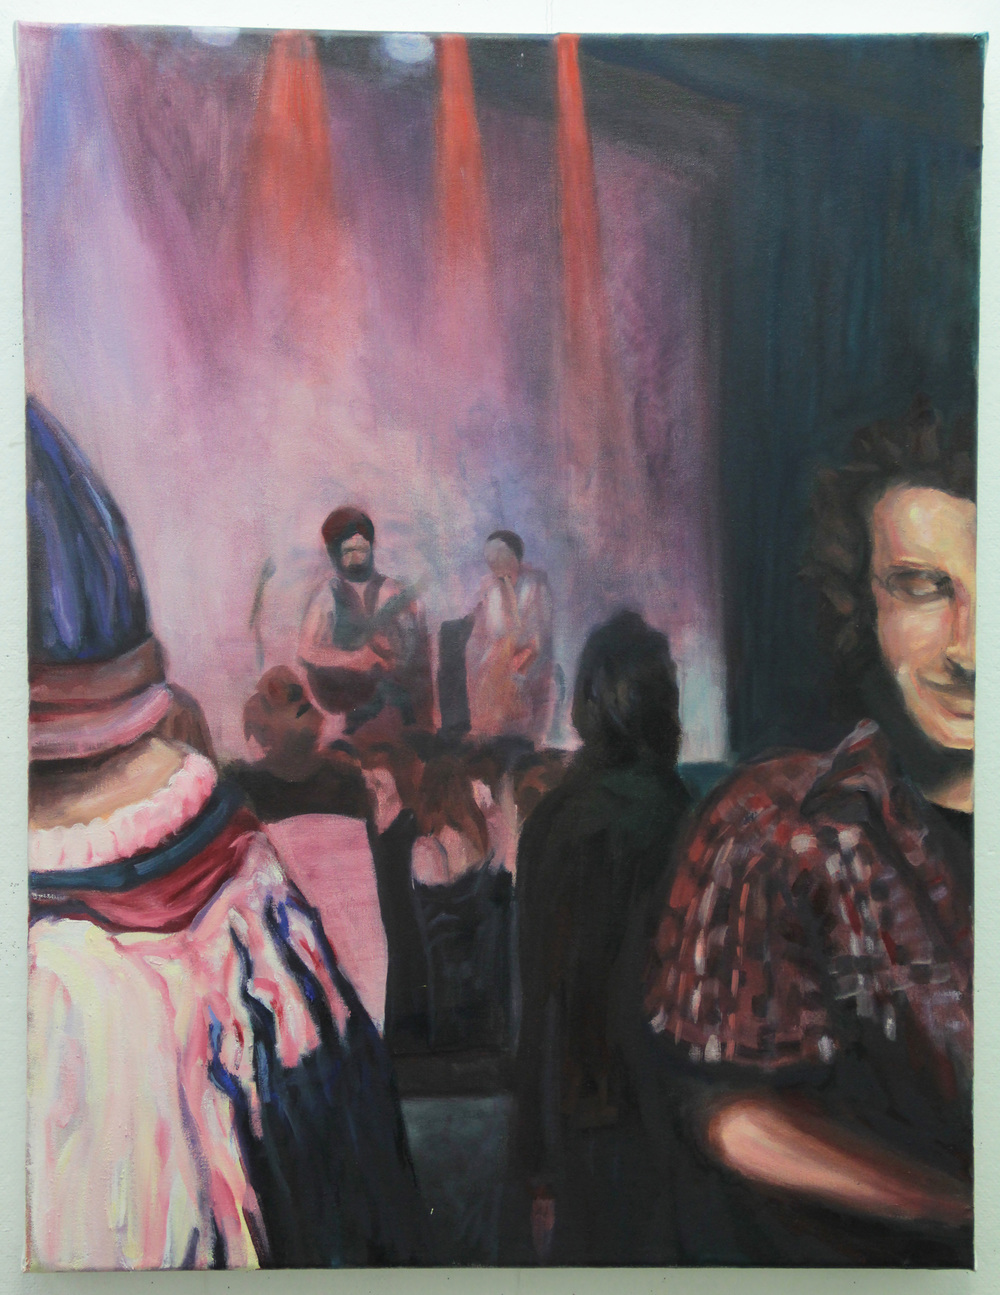 Smoke Rise Slings, 2011, Oil on Linen, 40 inches (101.6 cm) x 30 inches (76.2 cm)